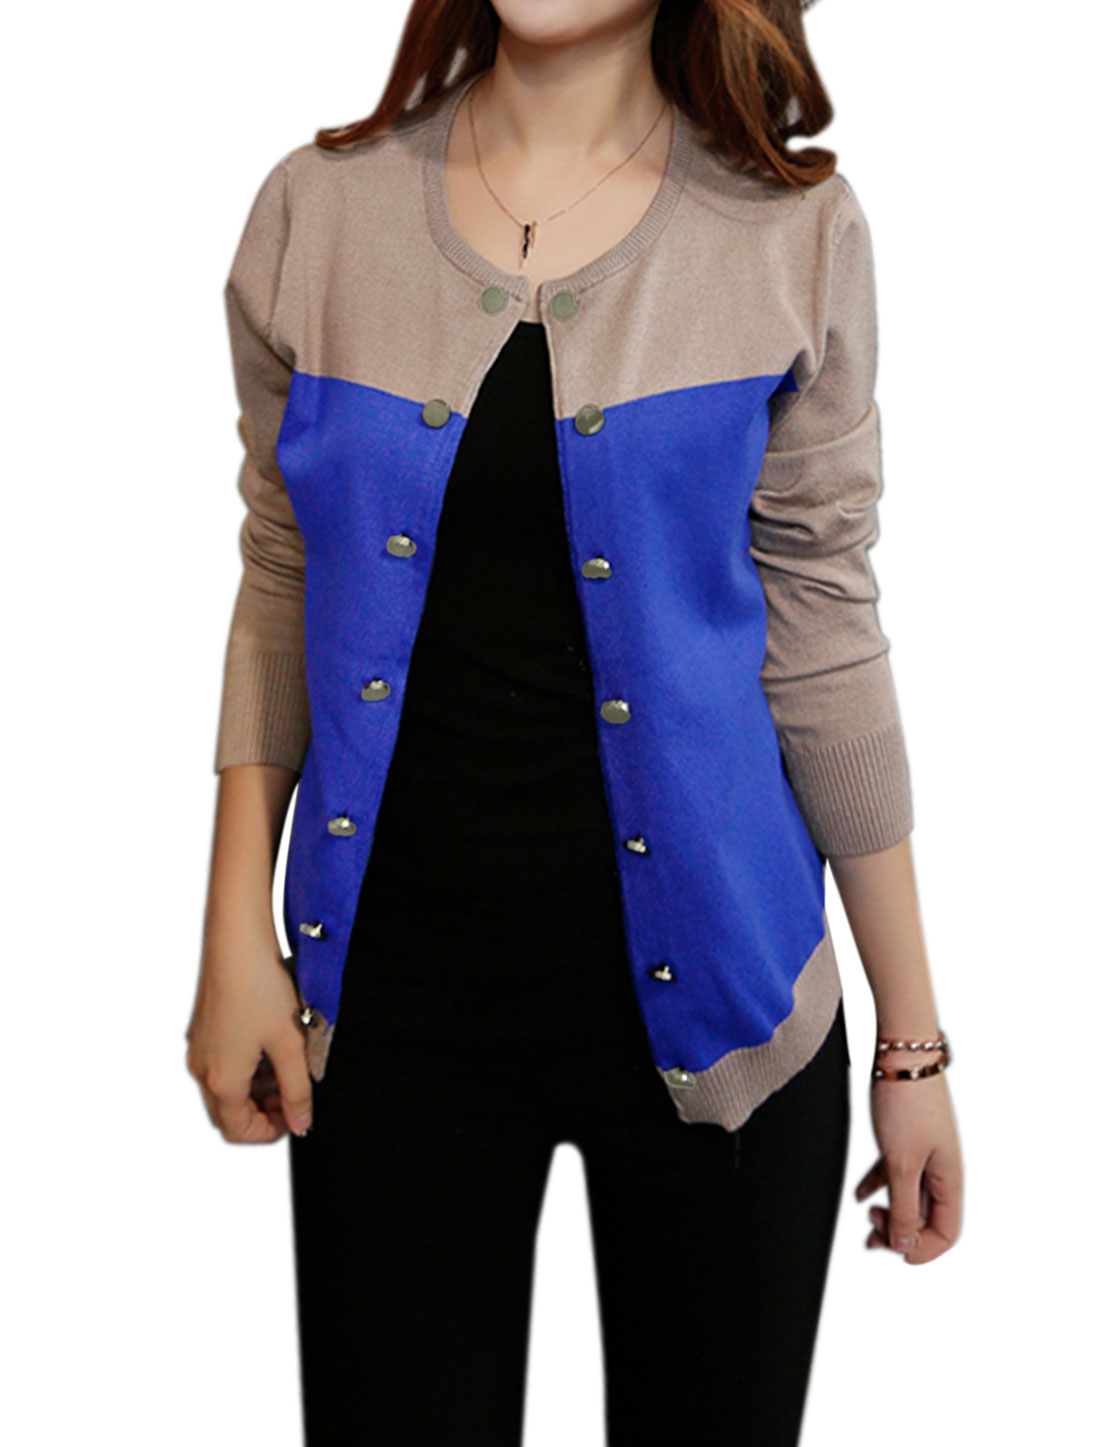 Allegra K Women Round Neck Button Decor Color Block Knit Cardigan Khaki Blue XS